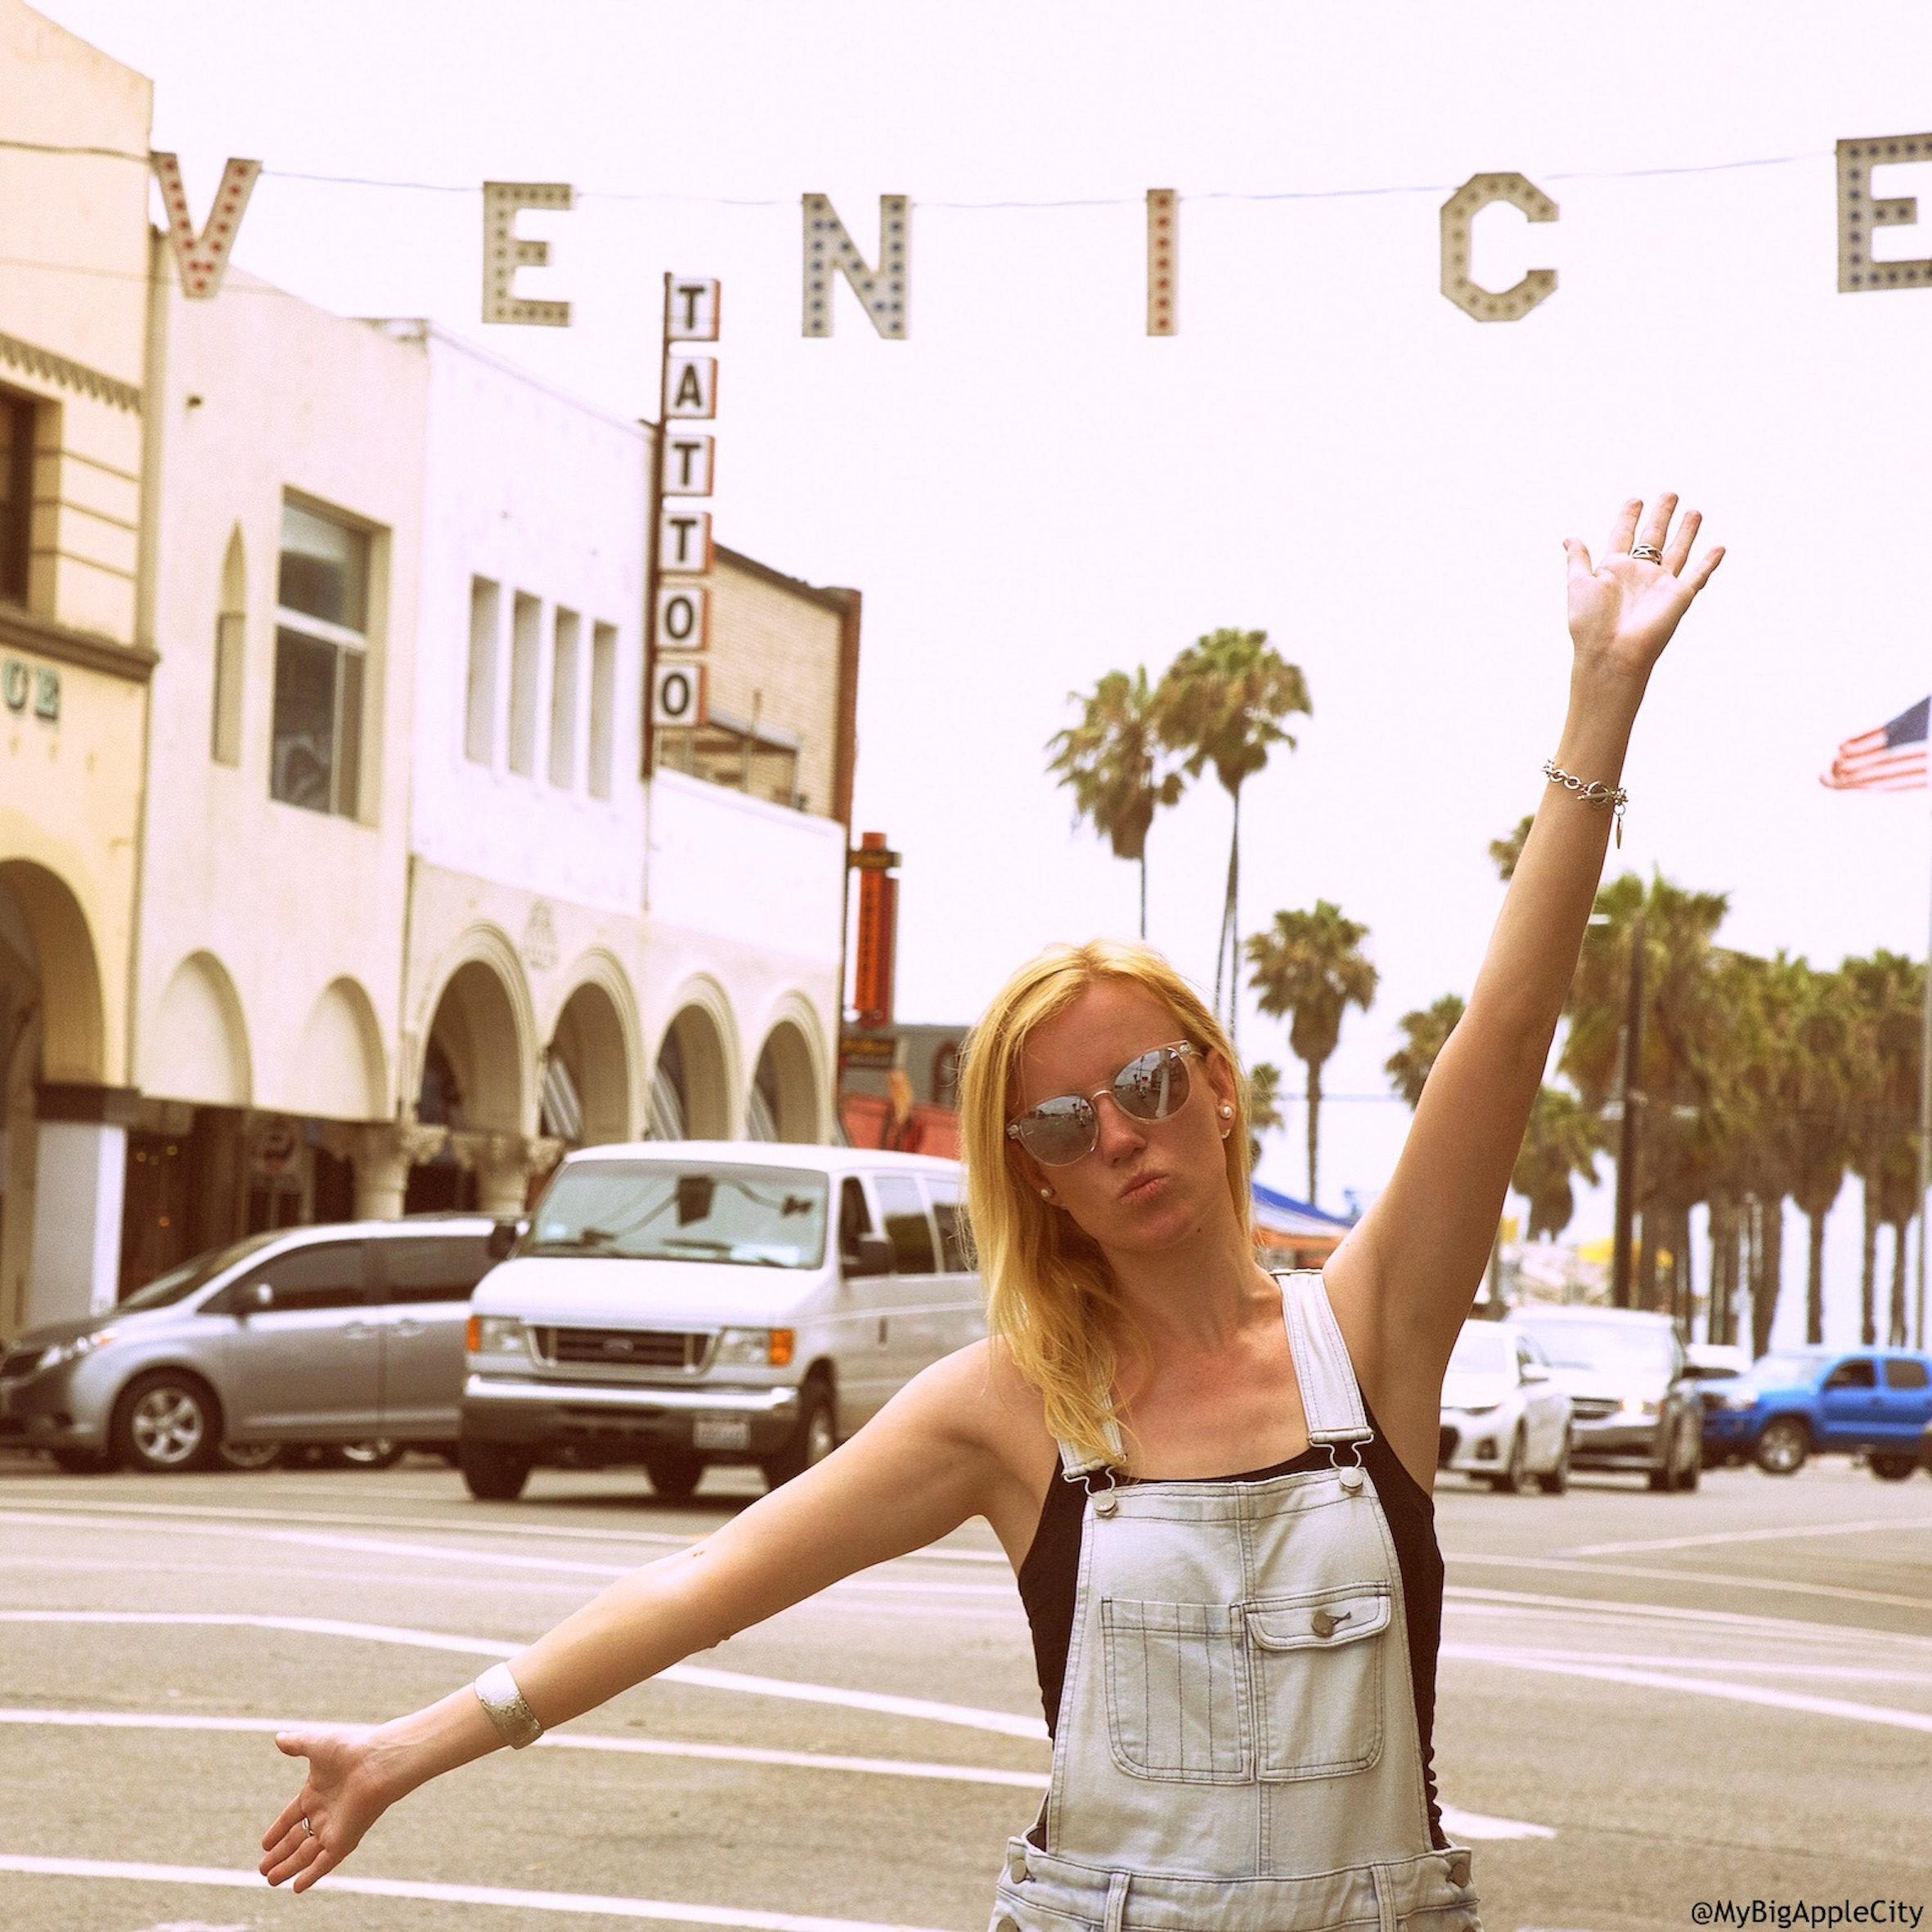 Fashion-Blogger-LA-VeniceBeach-travel-MyBigAppleCity